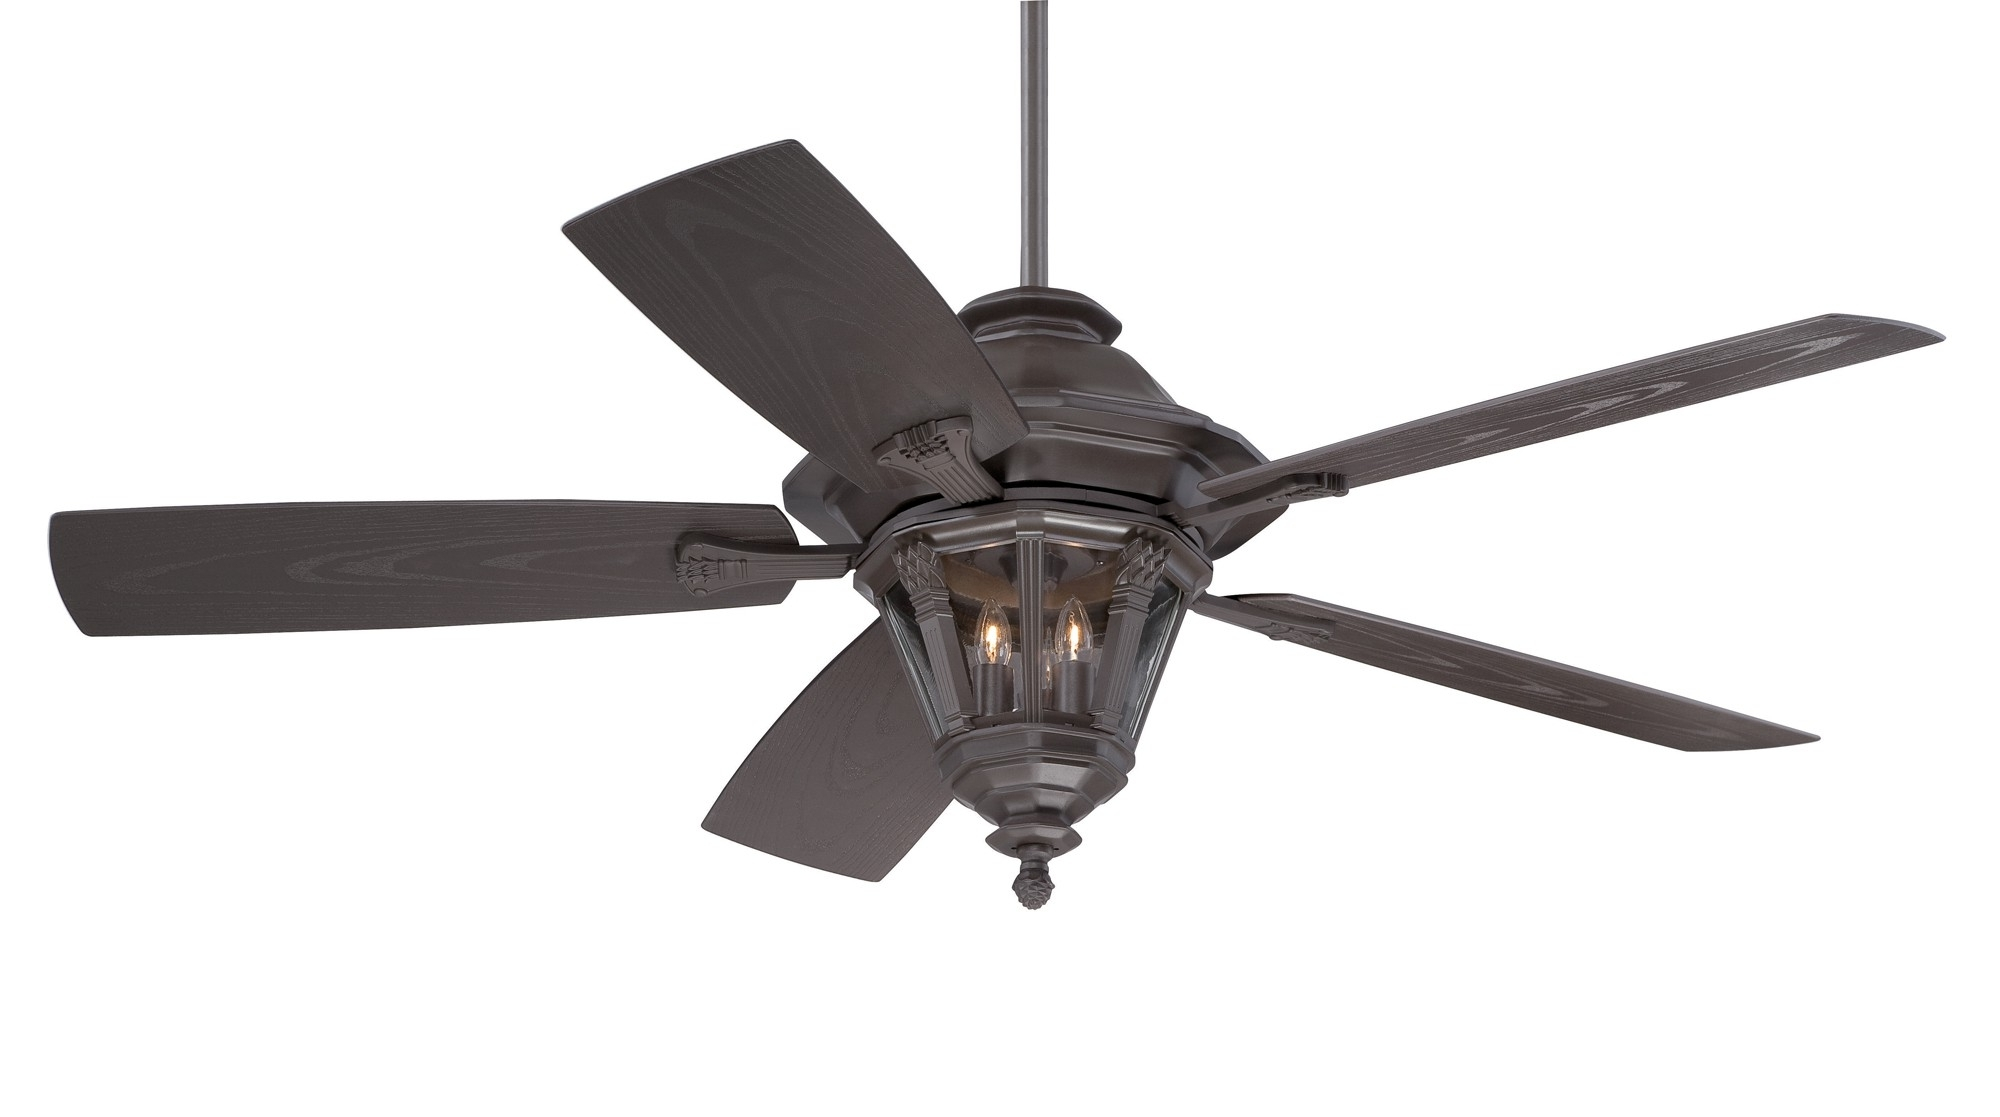 Fashionable Modern Outdoor Ceiling Fans With Lights Inside Outdoor Ceiling Fan With Lights – Outdoor Lighting (View 12 of 20)